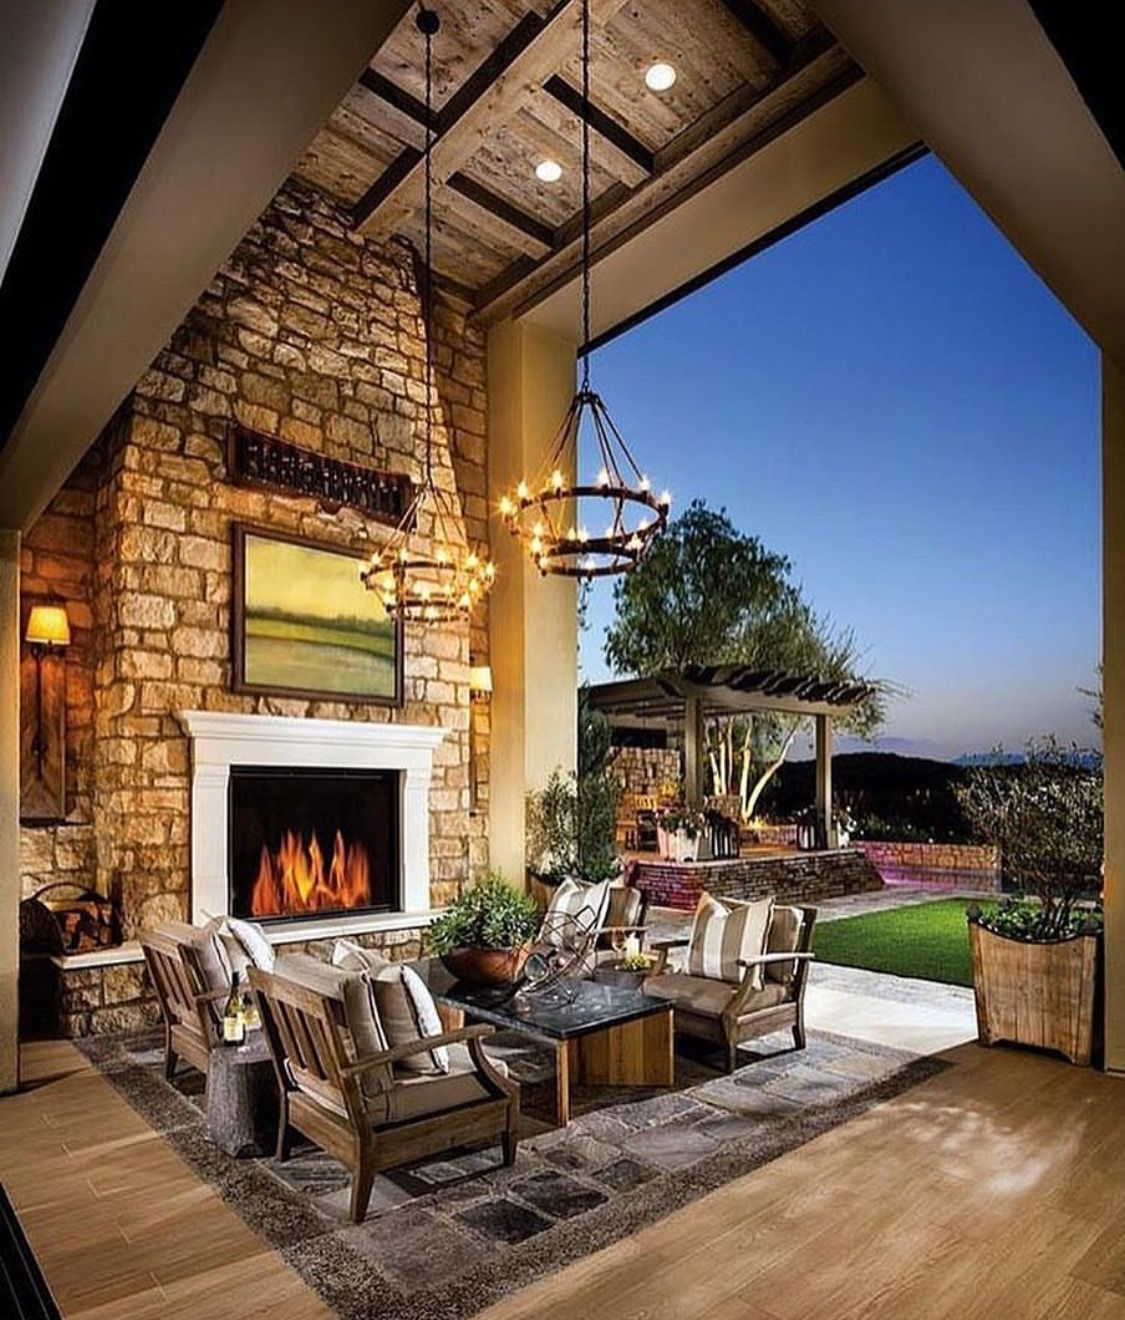 outdoor seating with fireplace indoor outdoor living outdoor living design outdoor kitchen on outdoor kitchen and living space id=52660